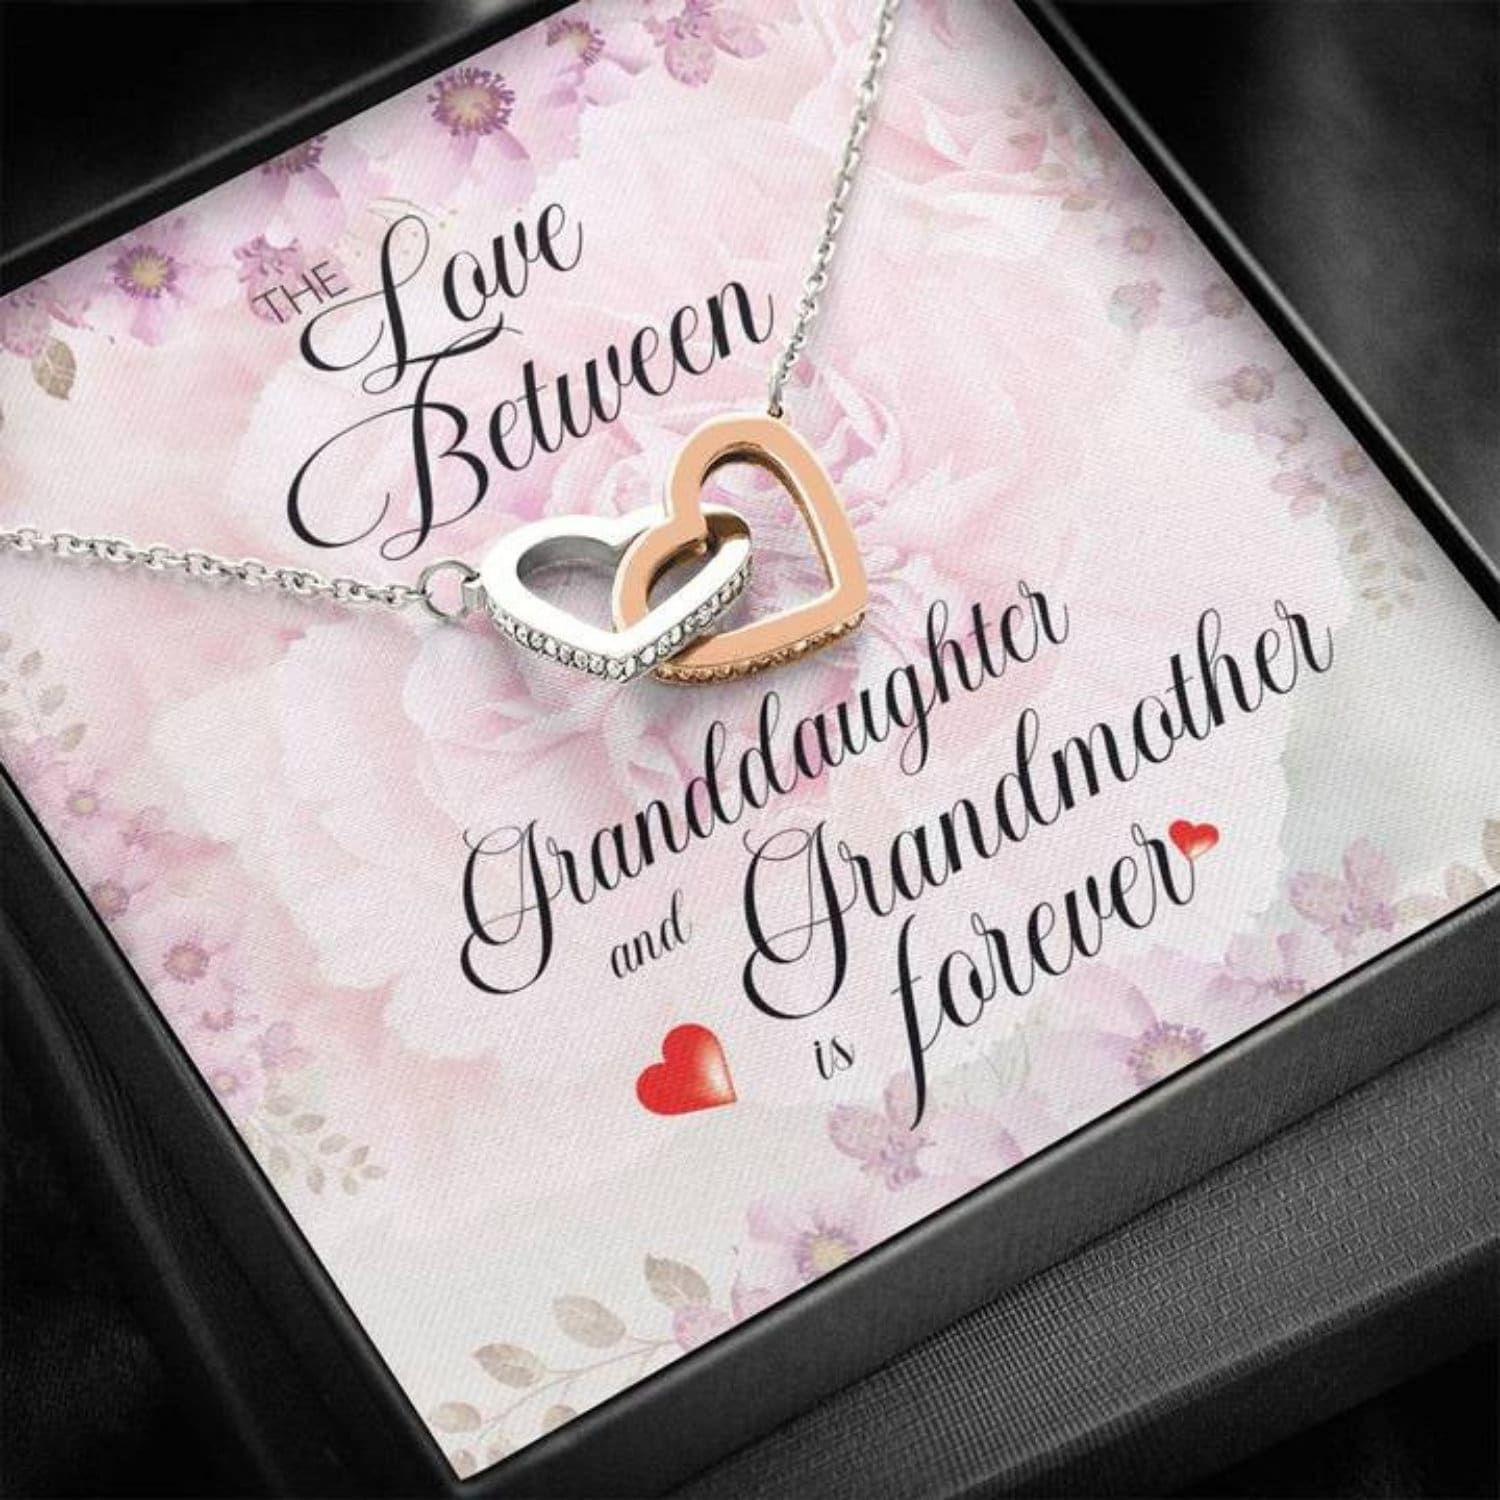 """""""✅ Grandma Necklace: Interlocking Heart Necklace ✅ Size: Height 0.6\"""" (1.5cm) x Width 1.1\"""" (2.7cm) ✅ Material: Cubic Zirconia stones, high quality polished surgical steel ✅ Adjustable cable chain, wear at 18\"""" to 22\"""" in length 🚚 USA Guarantee: Made, packaged and shipped from USA. ❗ Granddaughter Gifts, unique, one-of-a-kind gift. Surprise your loved one with this gorgeous gift today! Necklaces are universally accepted as a preferred gift choice for every occasion. This cute granddaughter neck"""